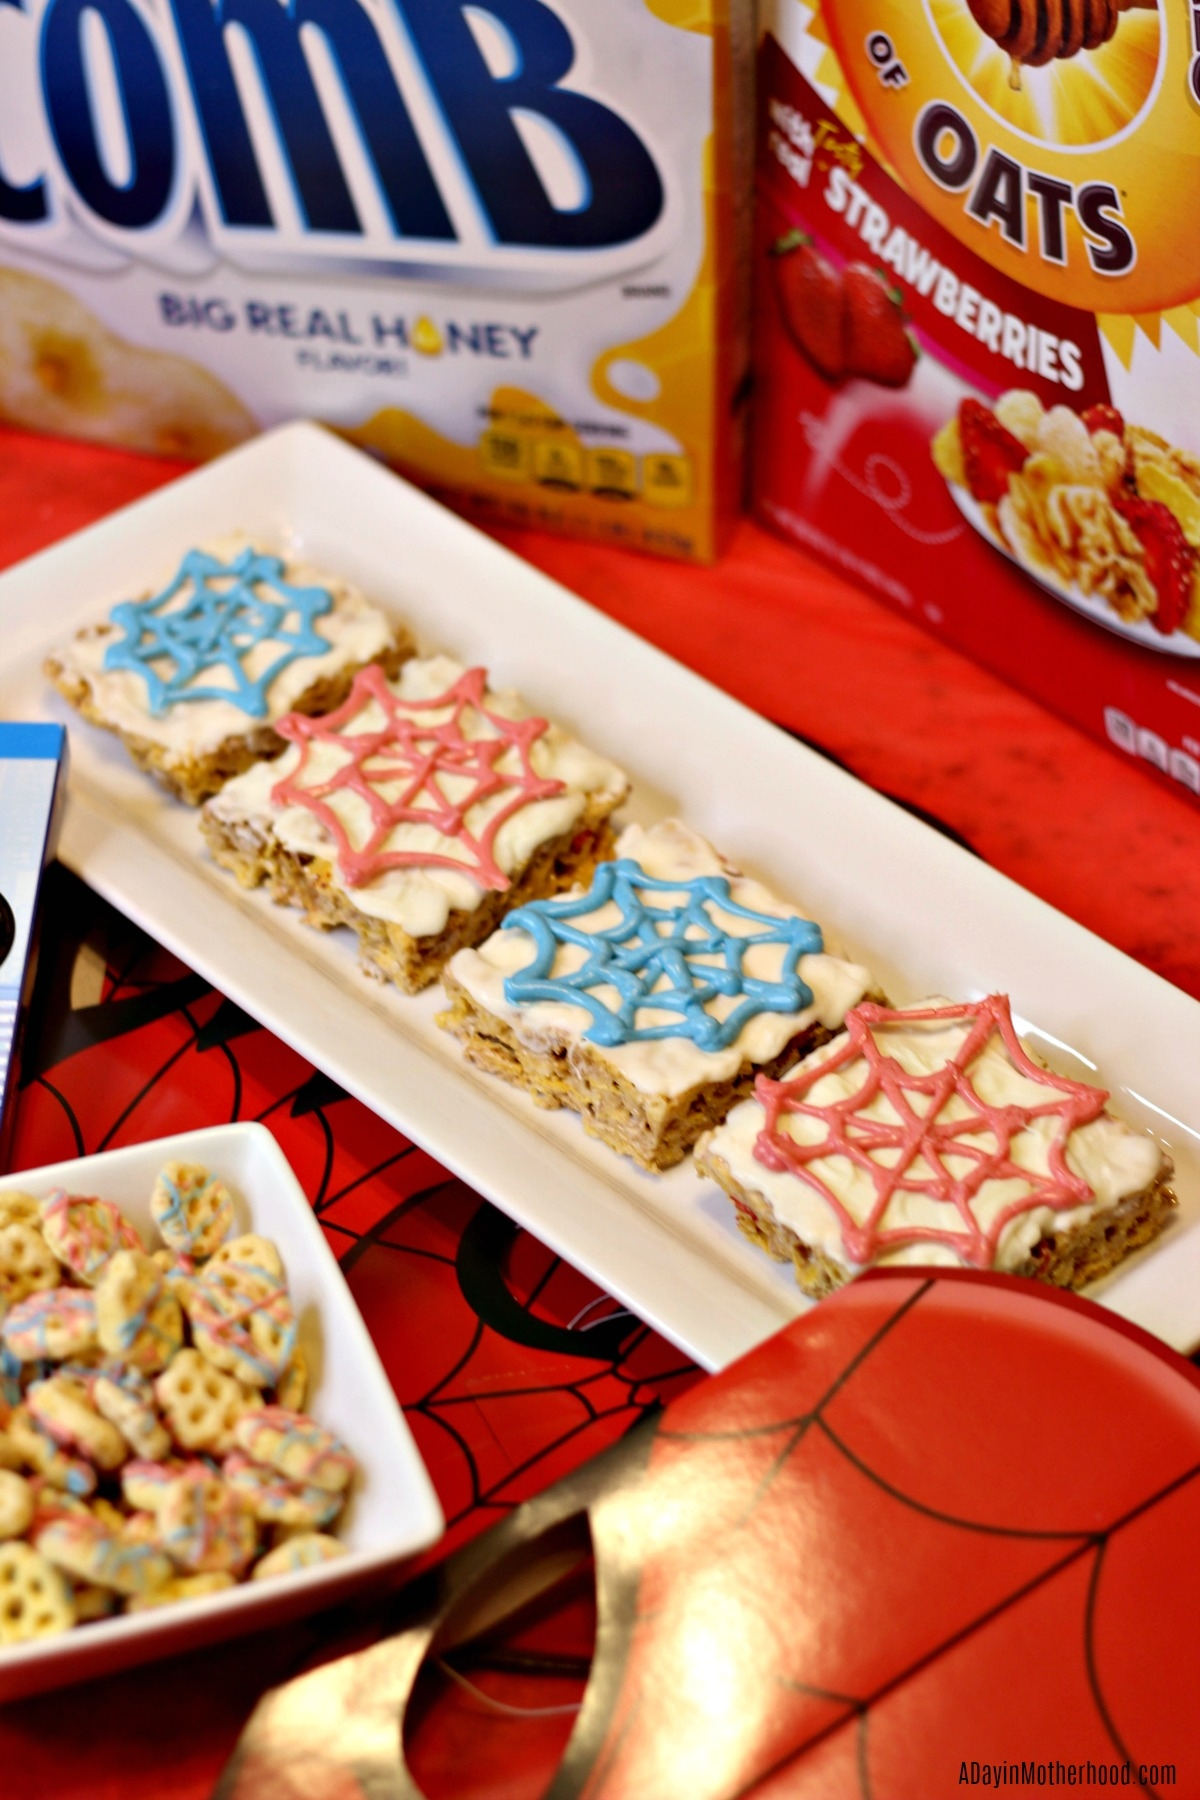 Spider-Man into the Spider-verse + Fun Treats = A Fun Filled Movie Night and spider webs